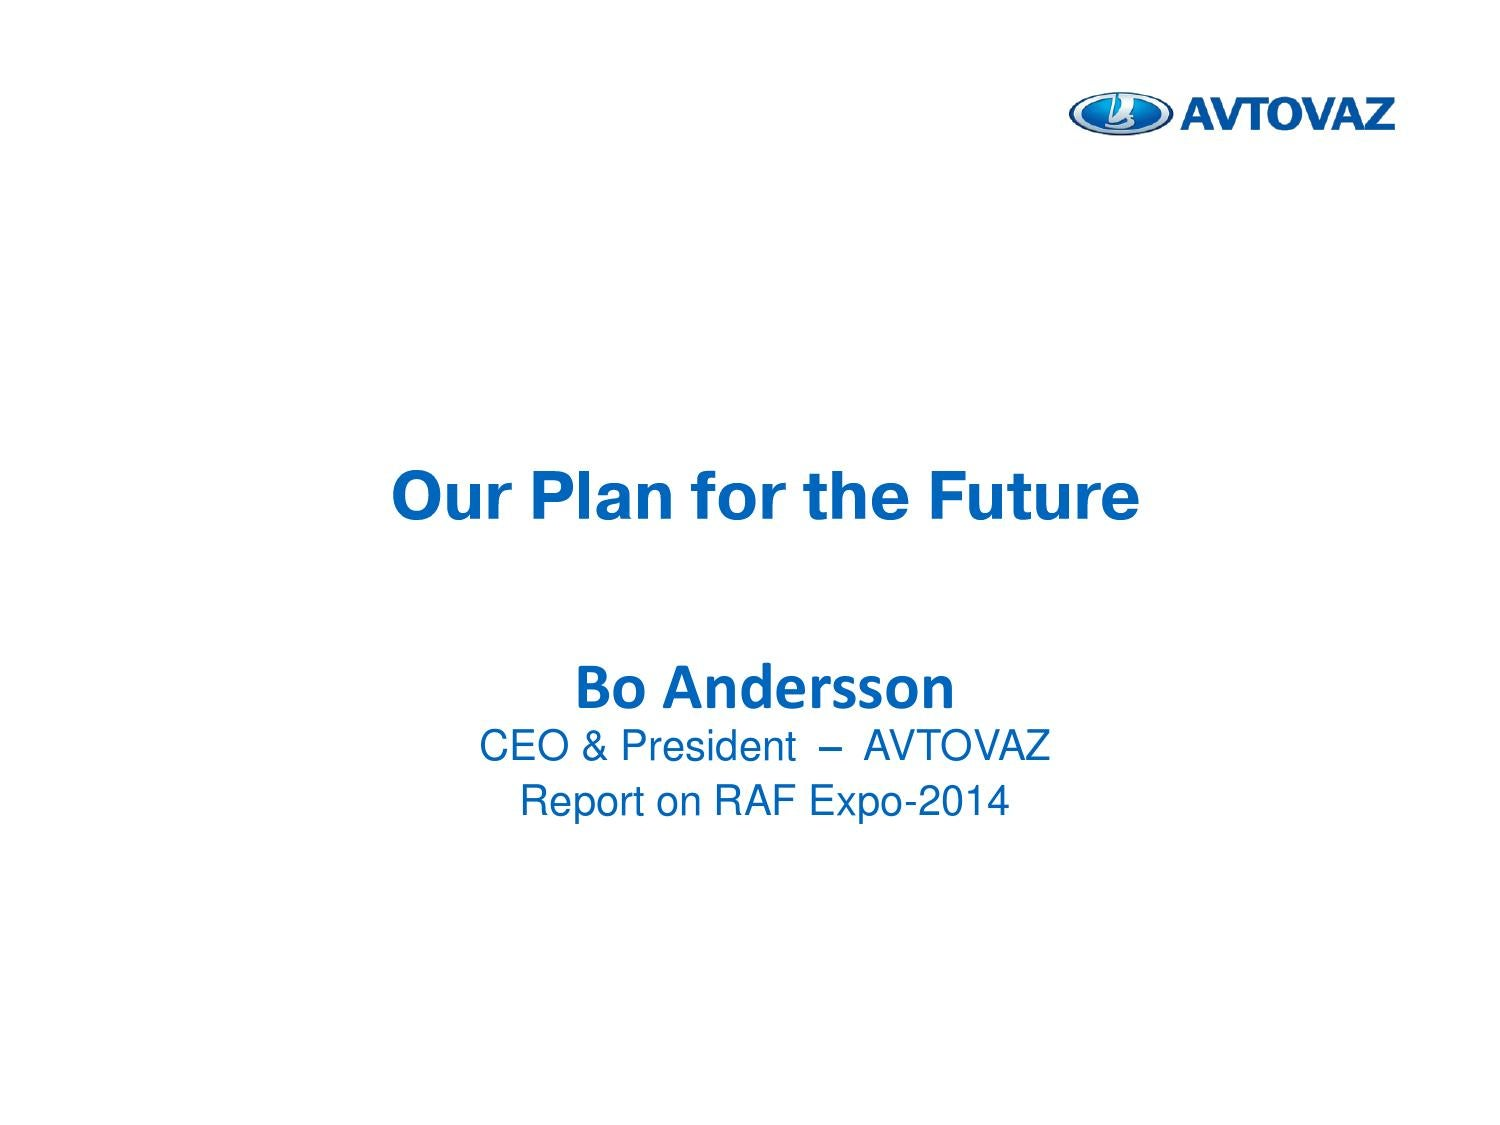 avtovaz business plan 2020